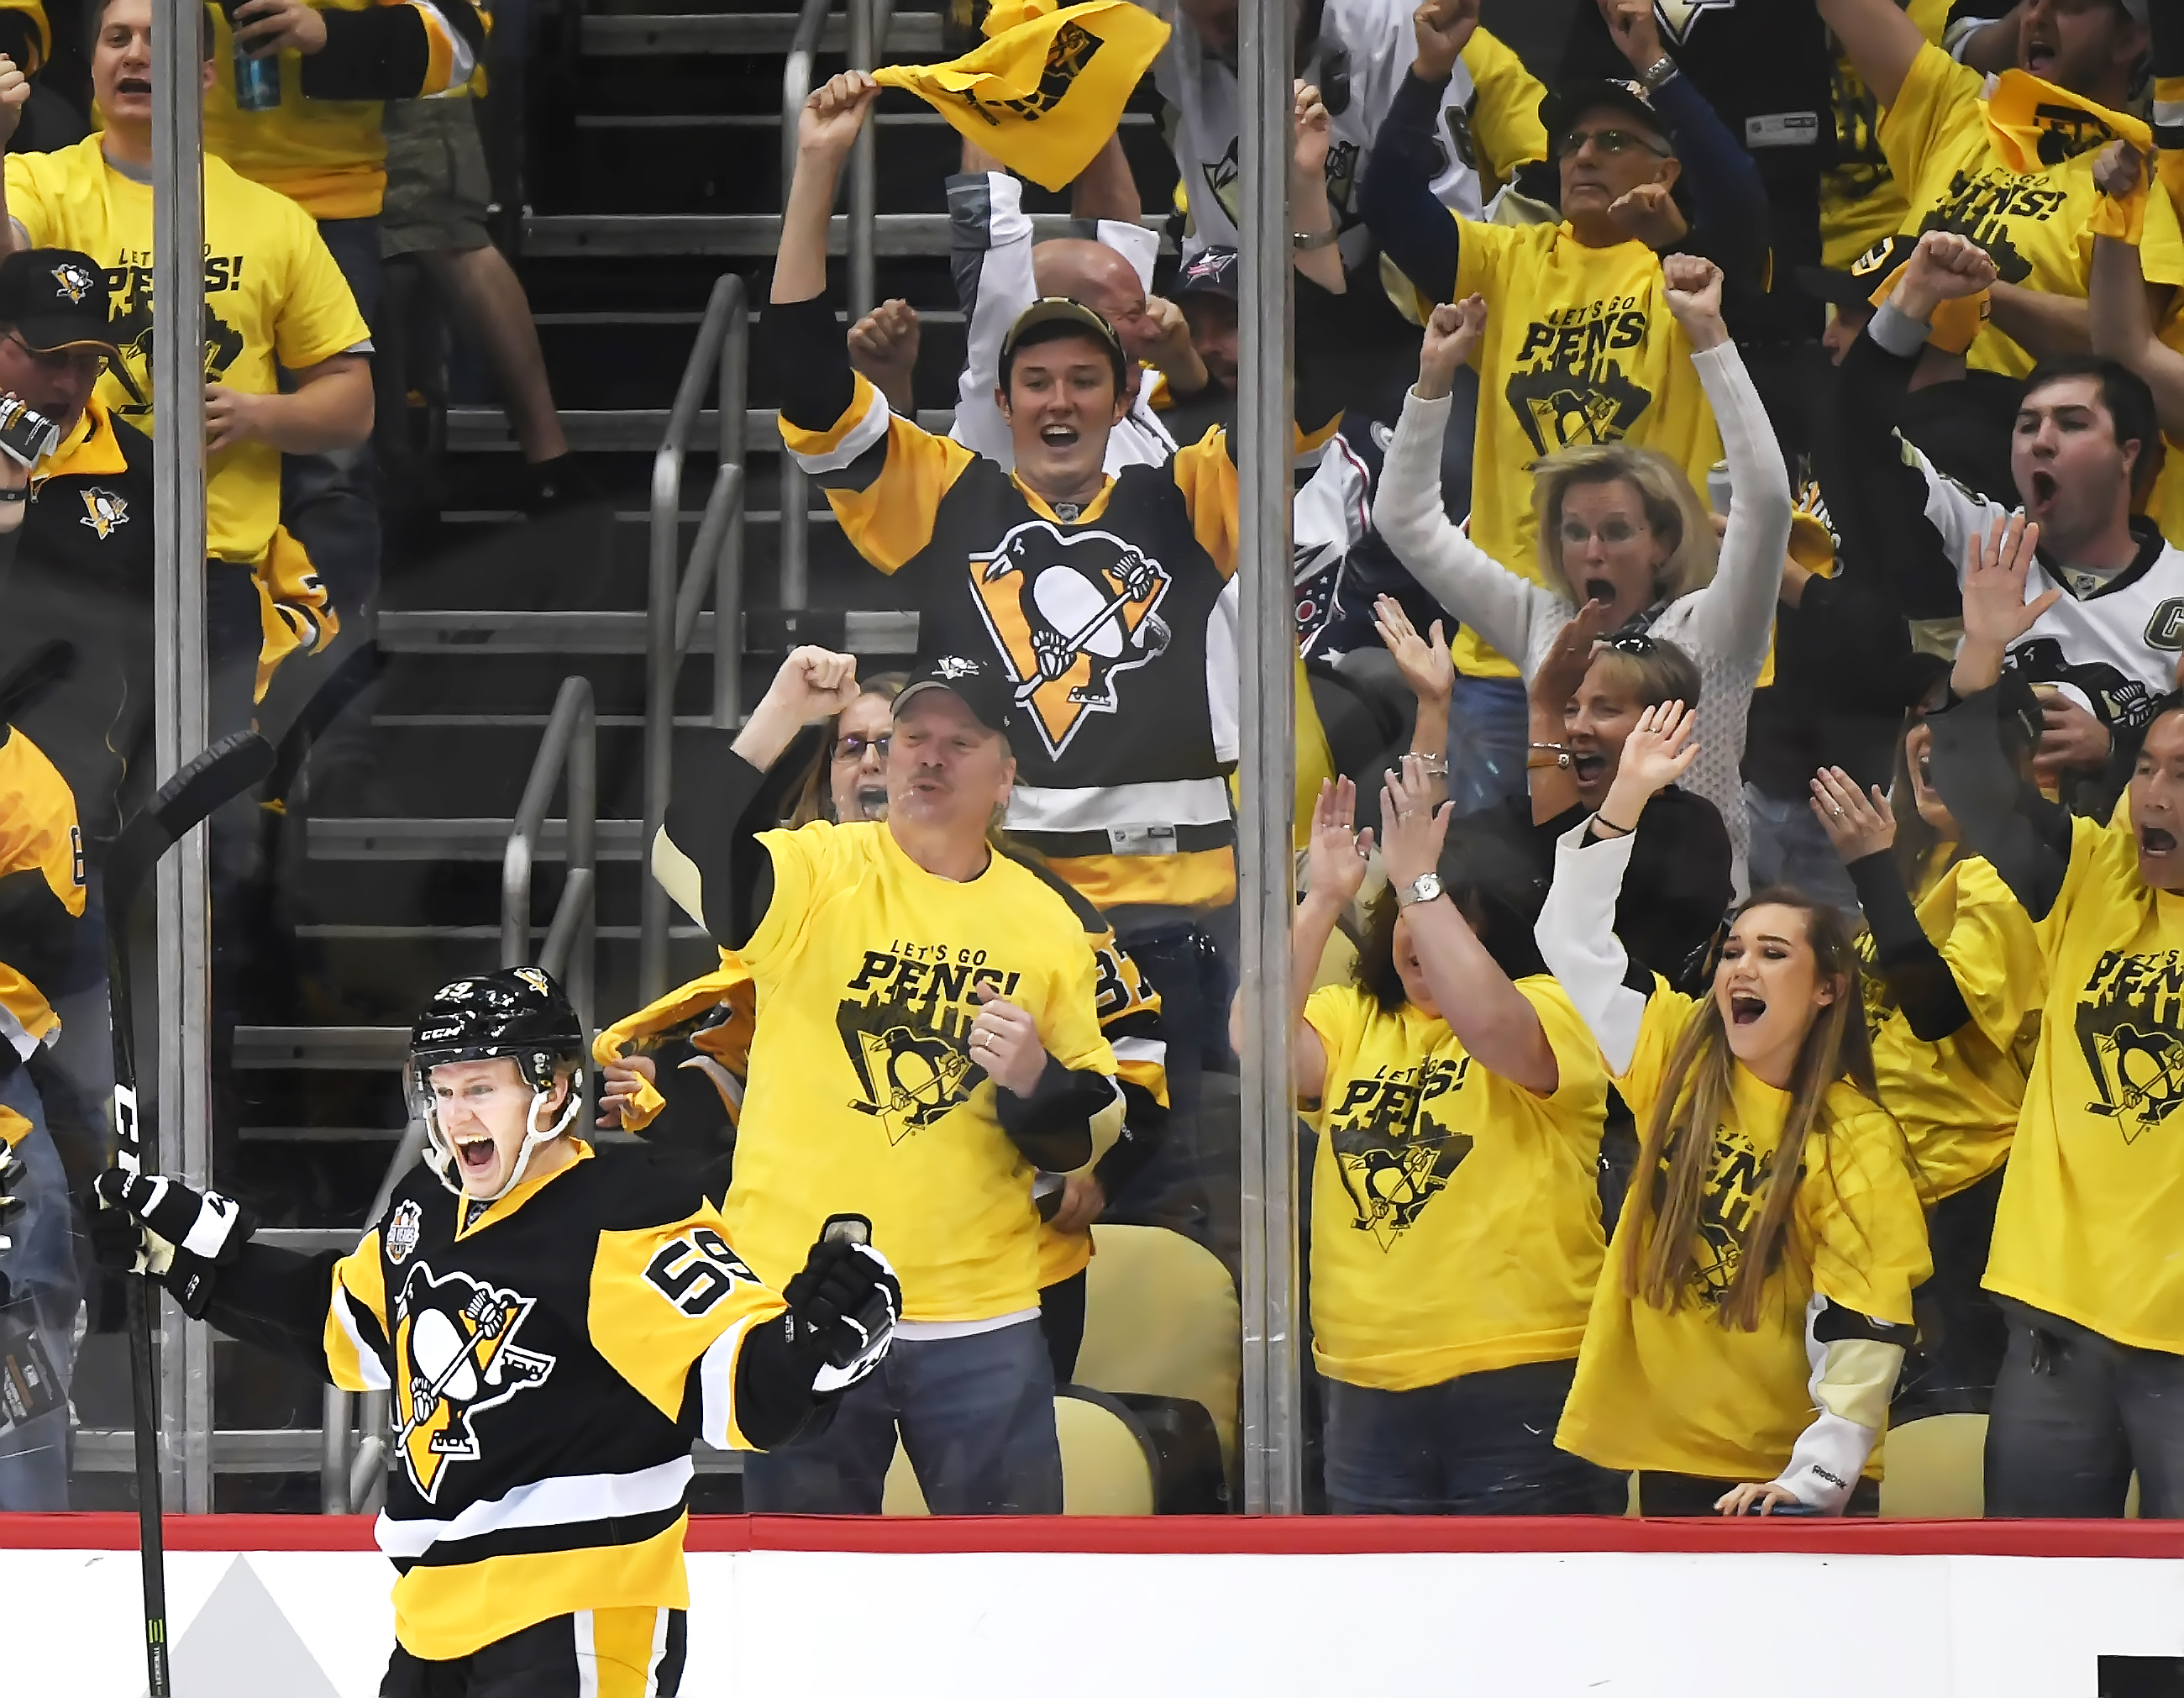 Ron Cook: Crosby-Guentzel-Sheary Could End Series In A Flash